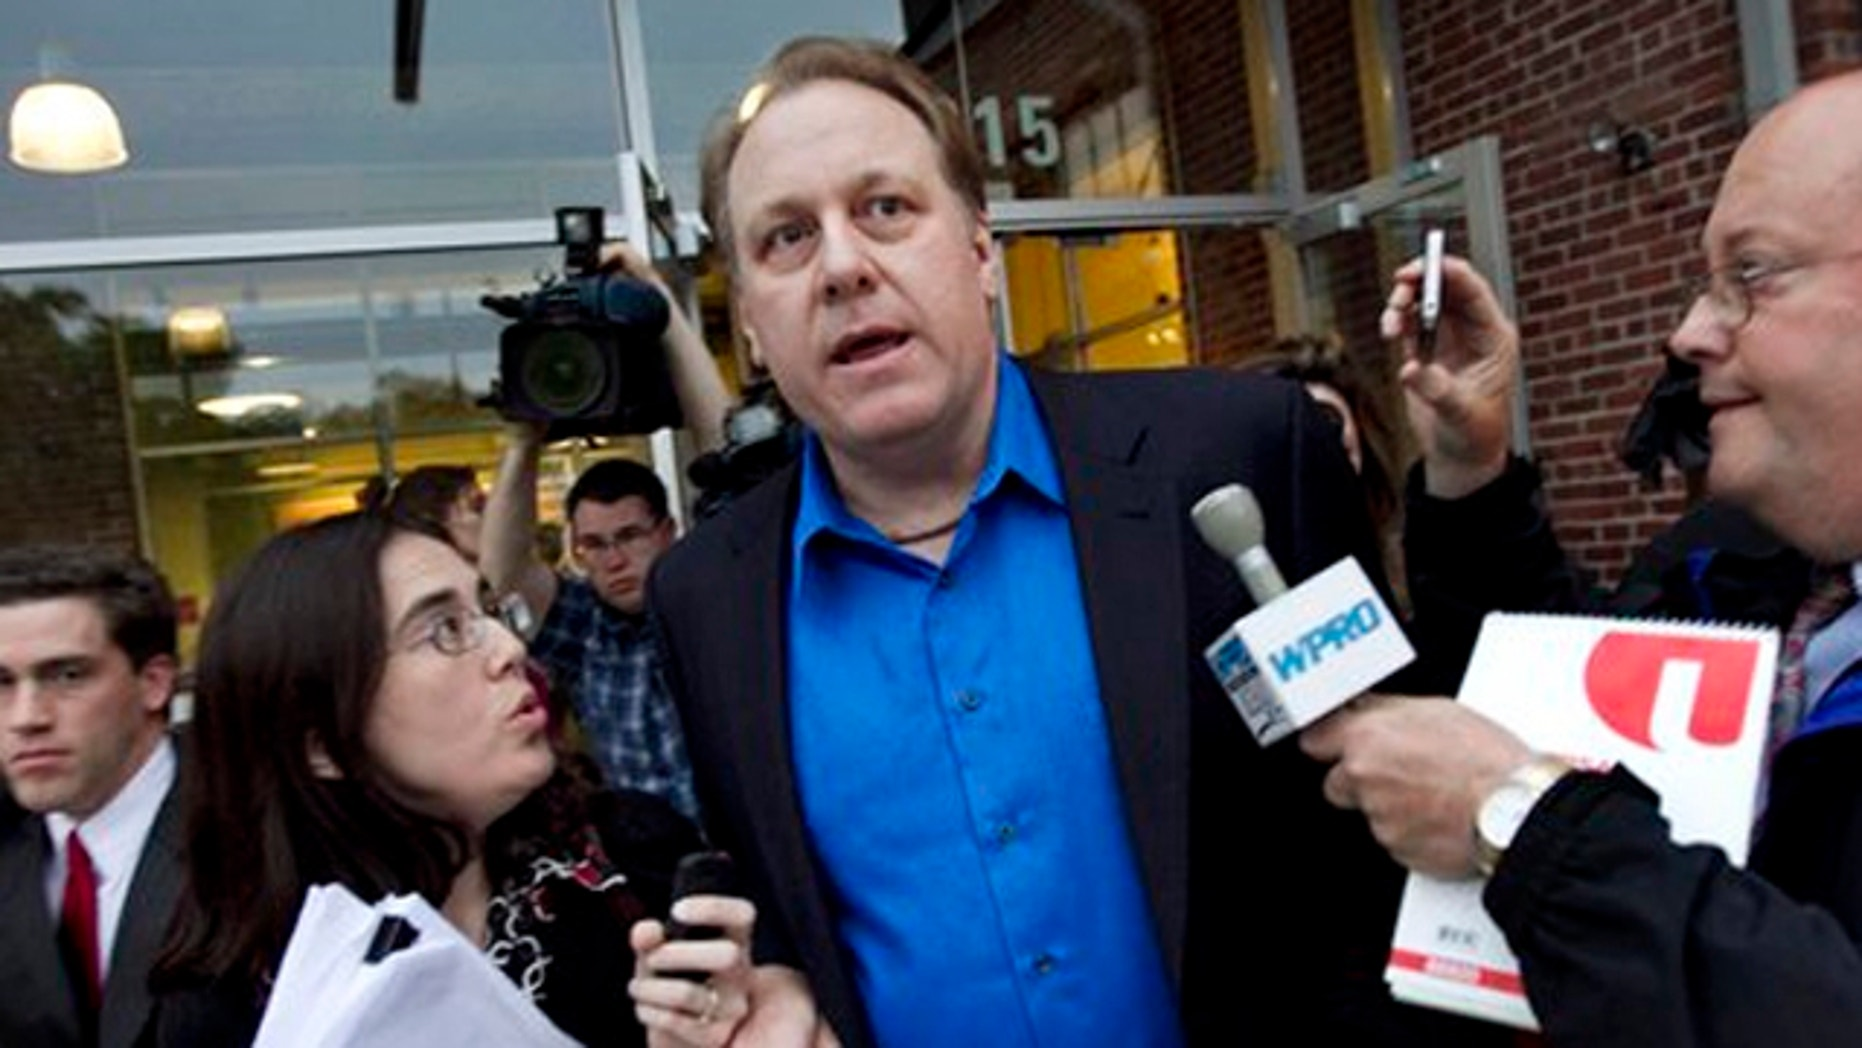 May 21, 2012: Former Boston Red Sox pitcher Curt Schilling, center, is followed by members of the media as he departs the Rhode Island Economic Development Corporation headquarters in Providence, R.I.